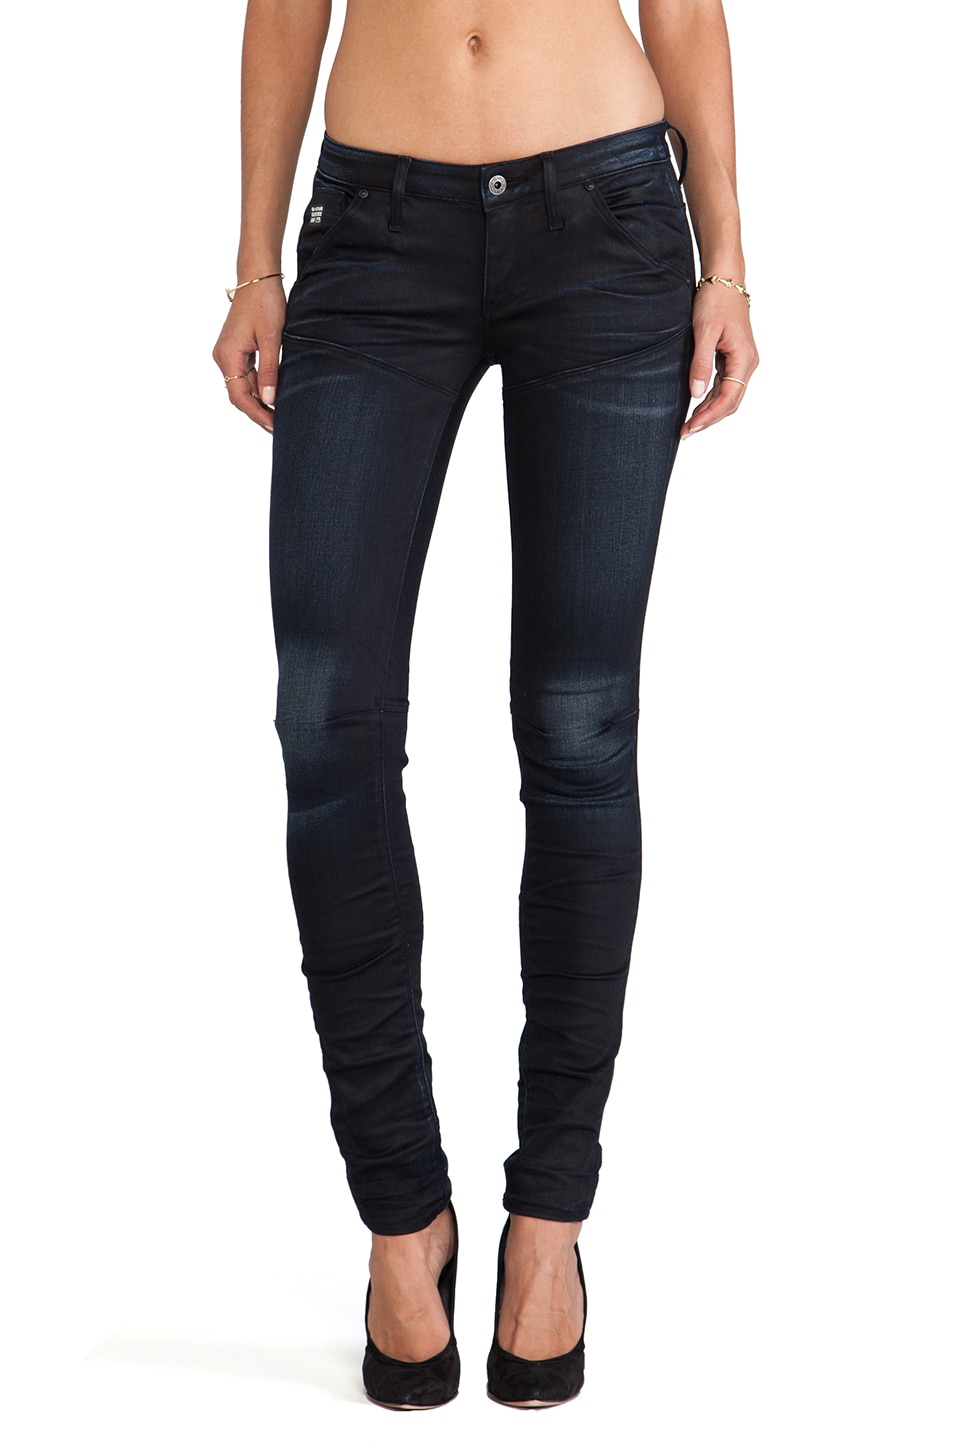 G-Star 5620 Slim Tapered in Slander Superstretch Dark Aged